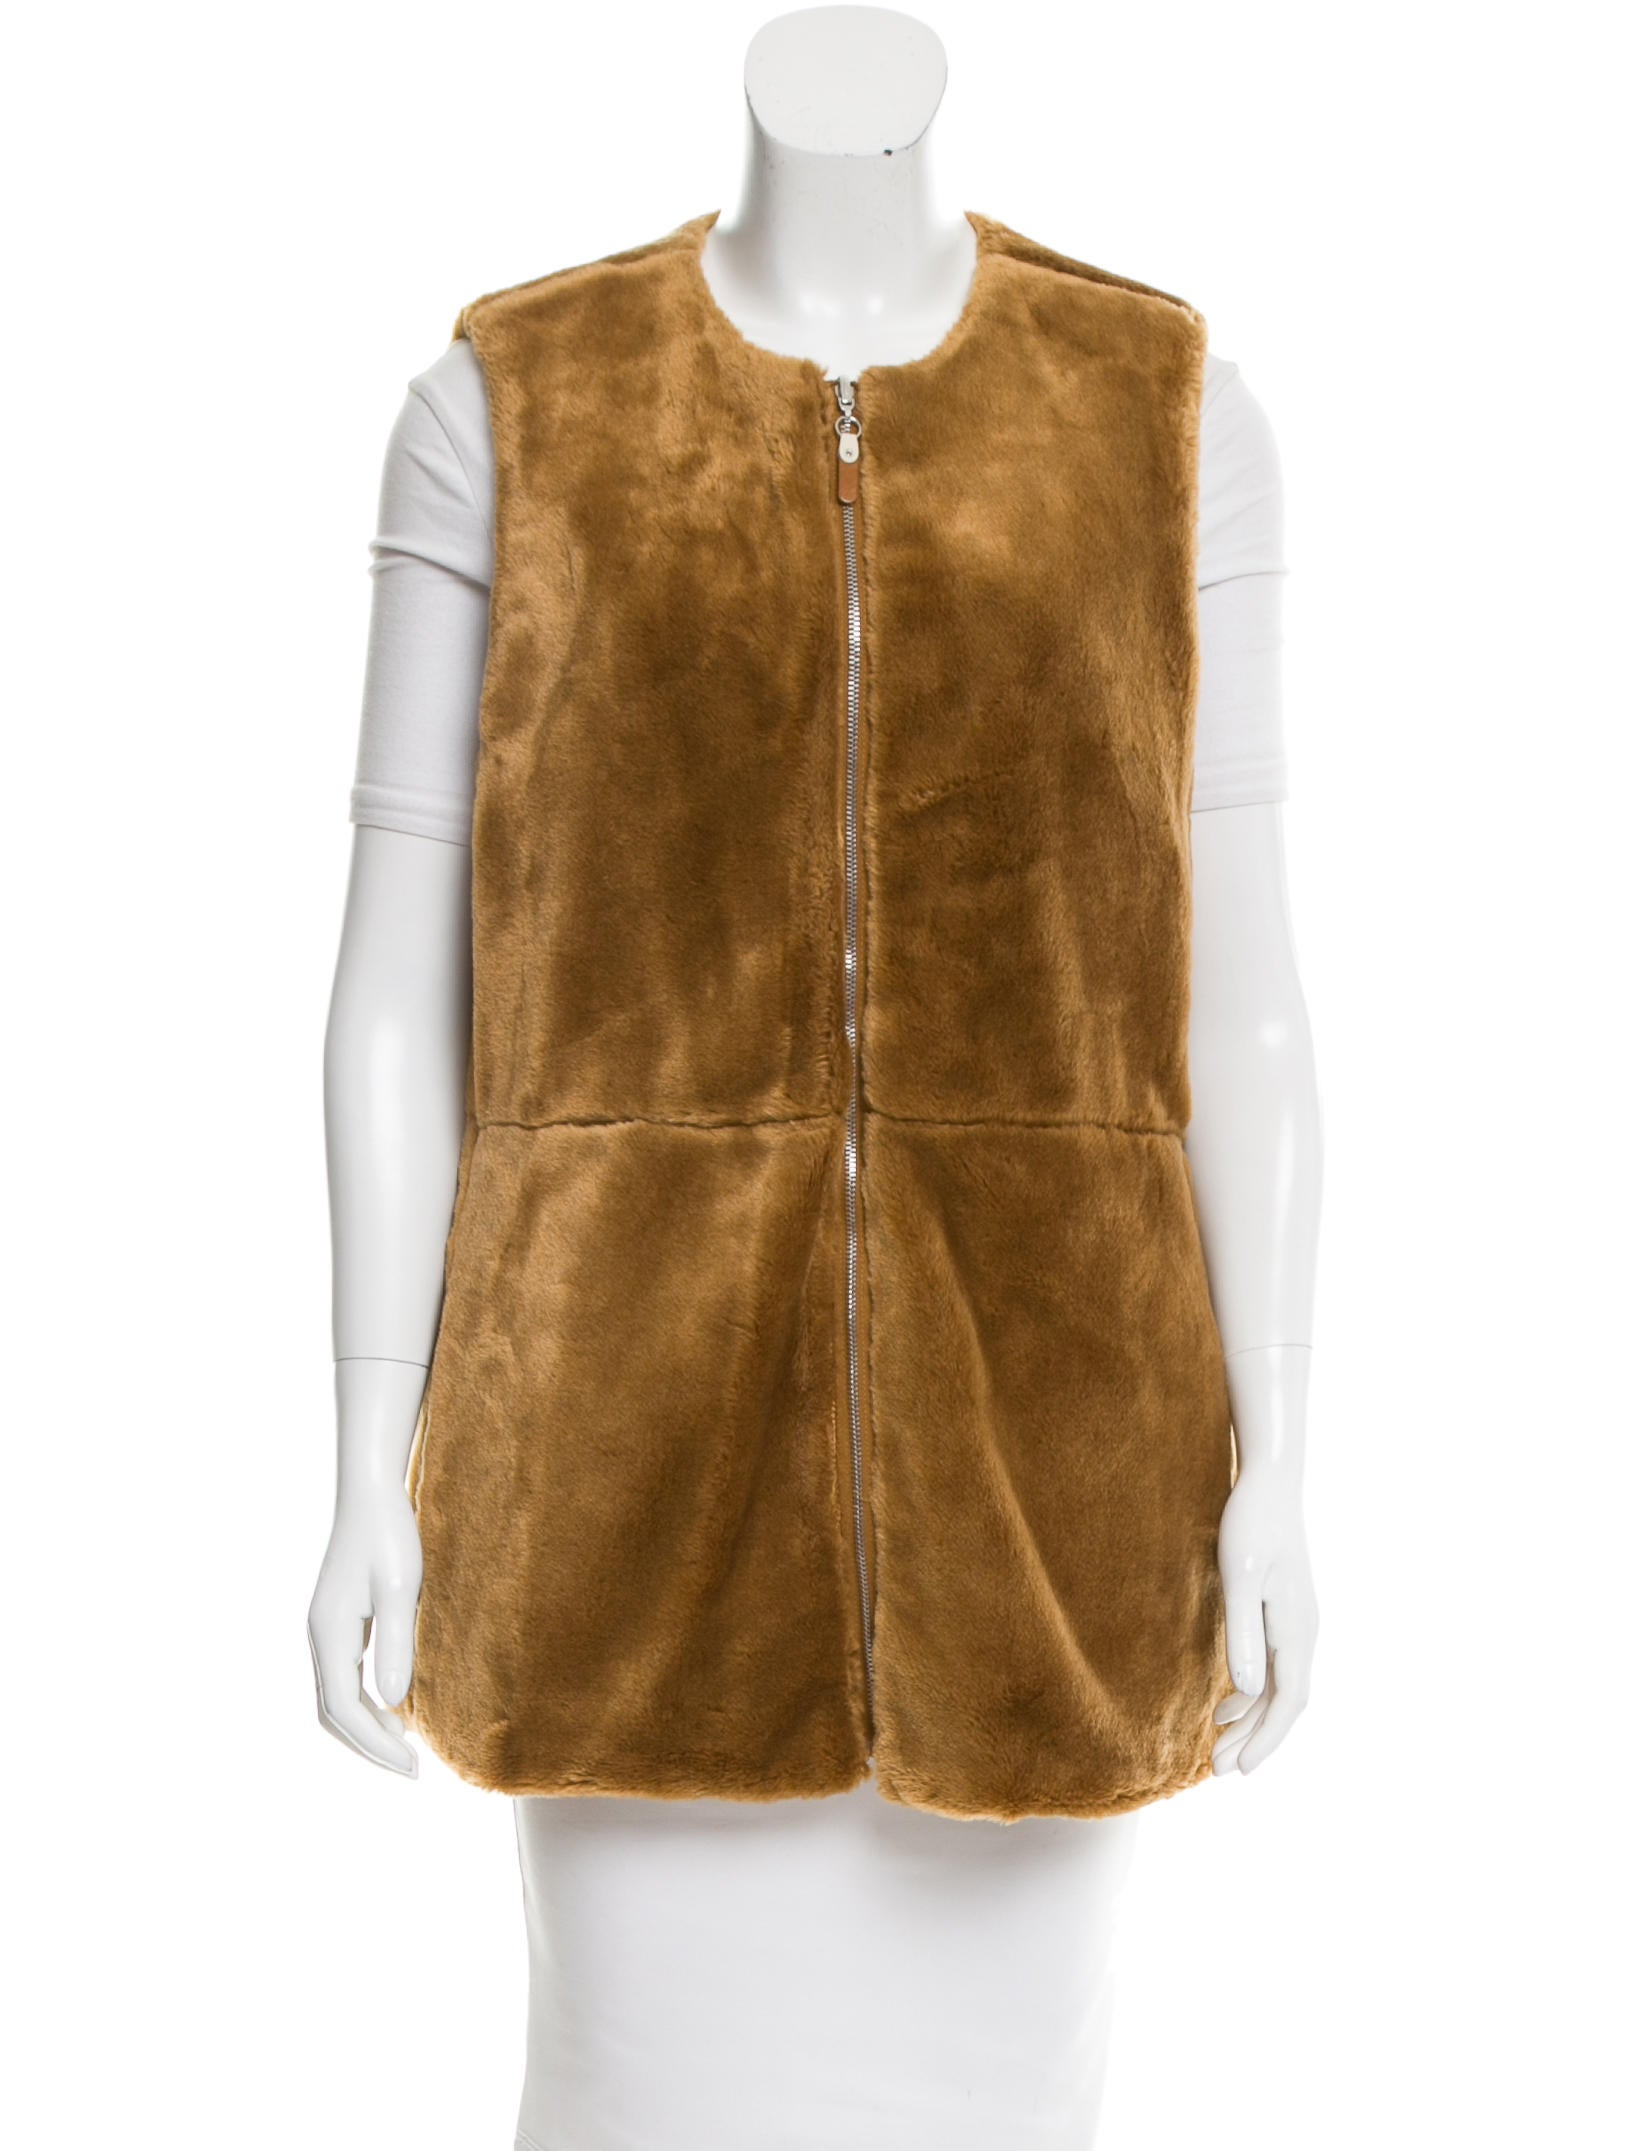 Fashion faux fur vest, Best gift for fashion girls and womens. Dikoaina Fashion Women Faux Fur Waistcoat Short Vest Jacket Coat Sleeveless Outwear. by Dikoaina. Faux Fur Lined, Sleeveless and Covered Agrafe. Via Spiga Women's Faux Fur Vest. by Via Spiga. $ - .